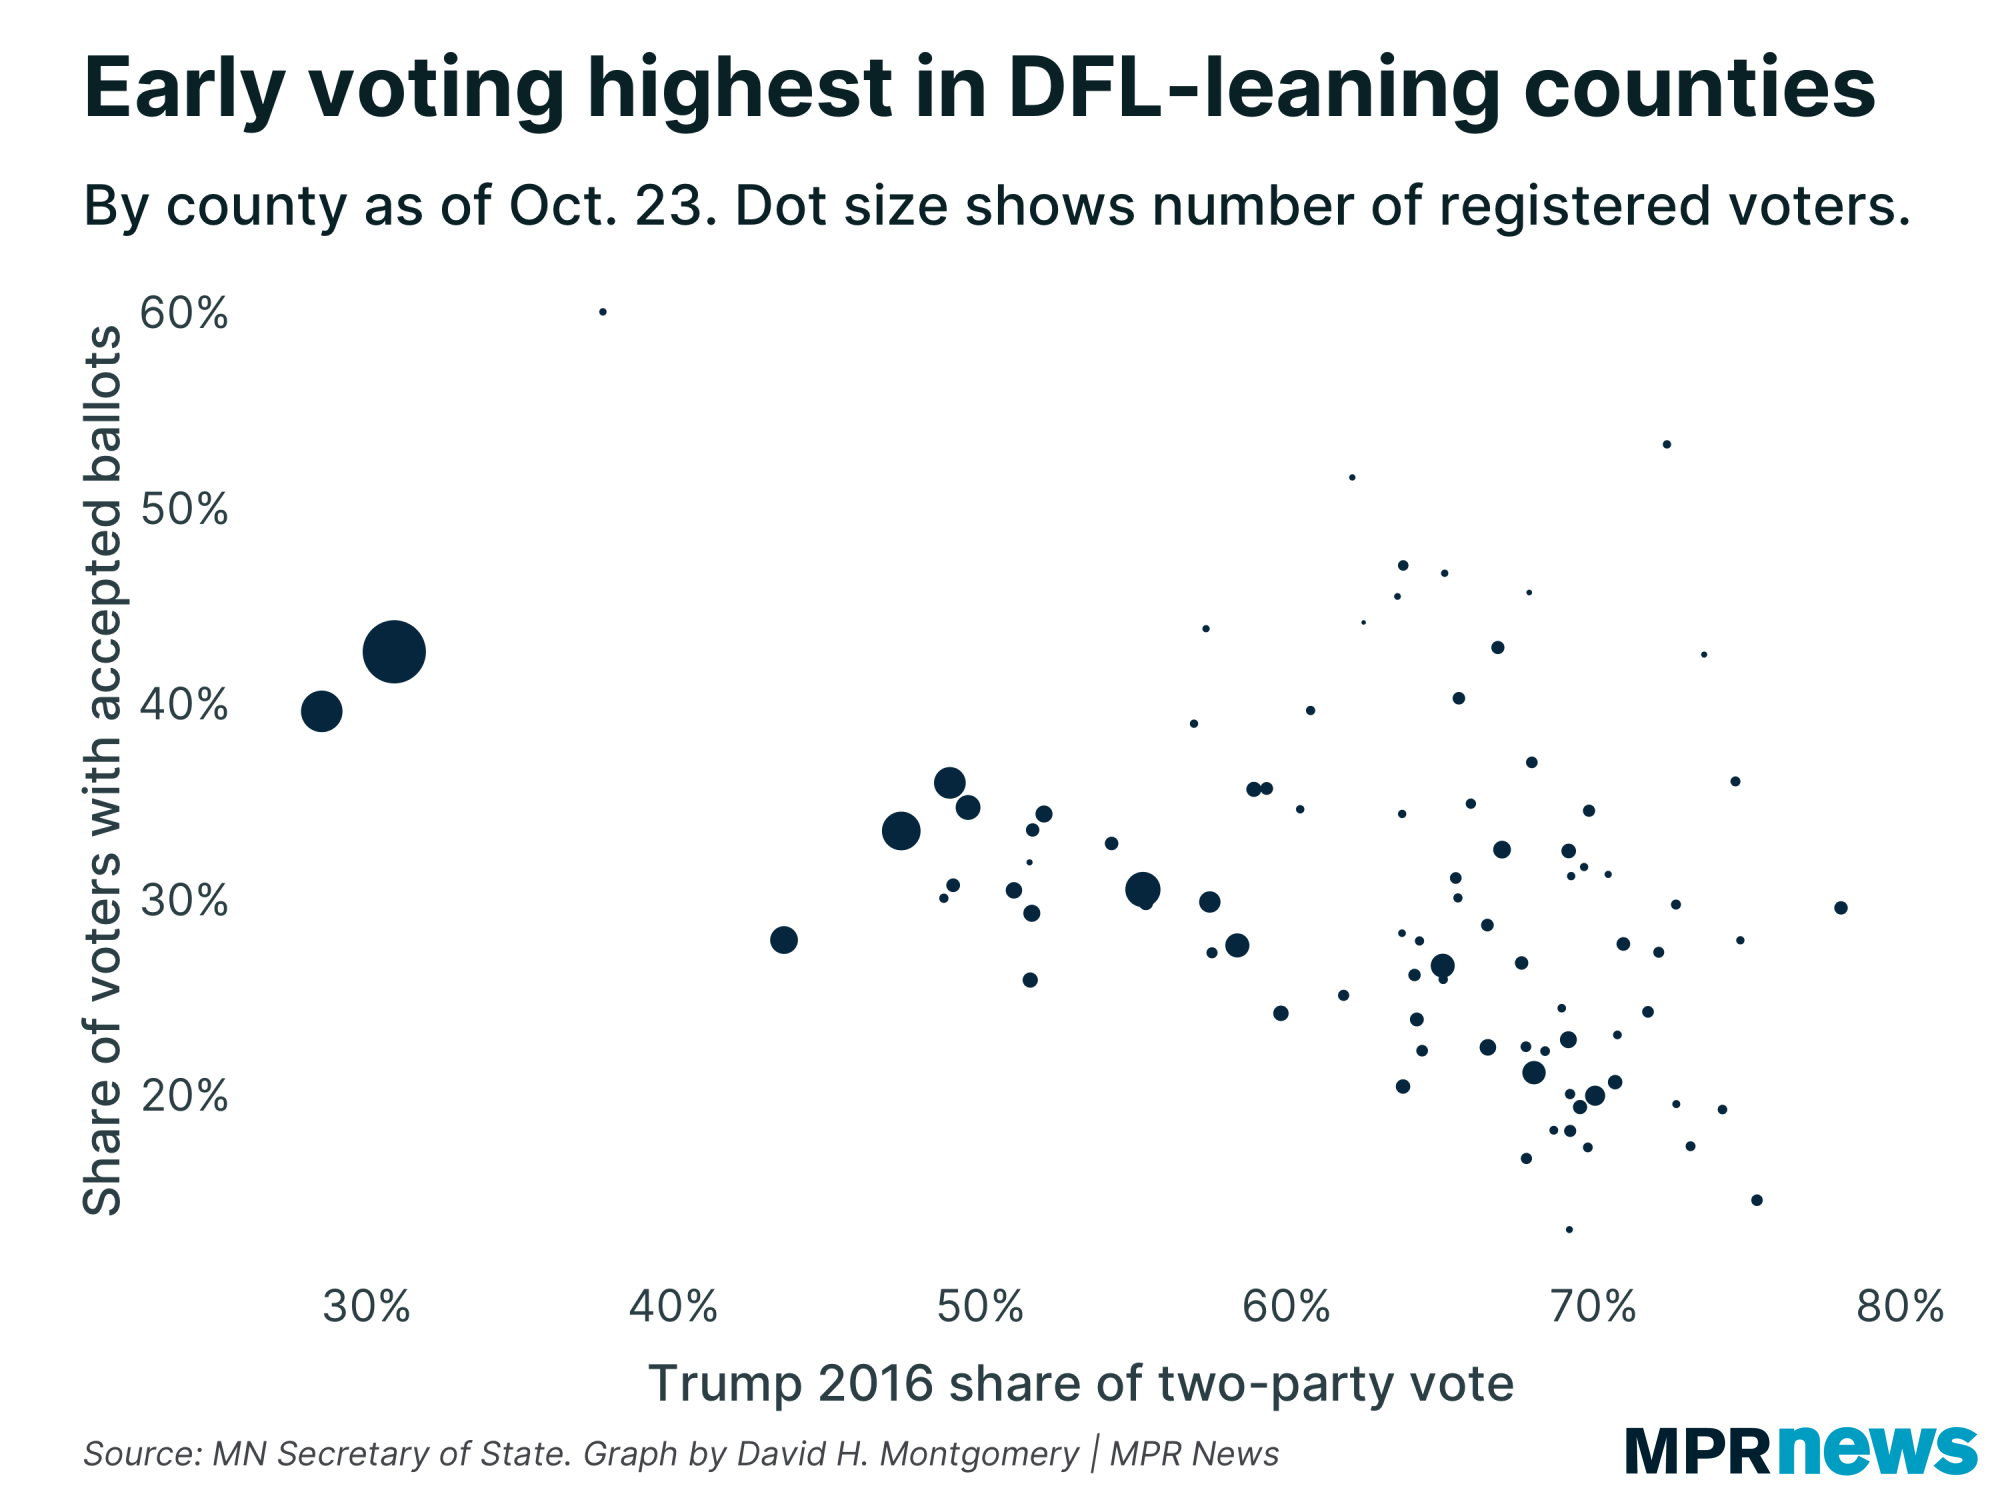 Early voting as of Oct. 23 by county, vs. Donald Trump's 2016 vote share